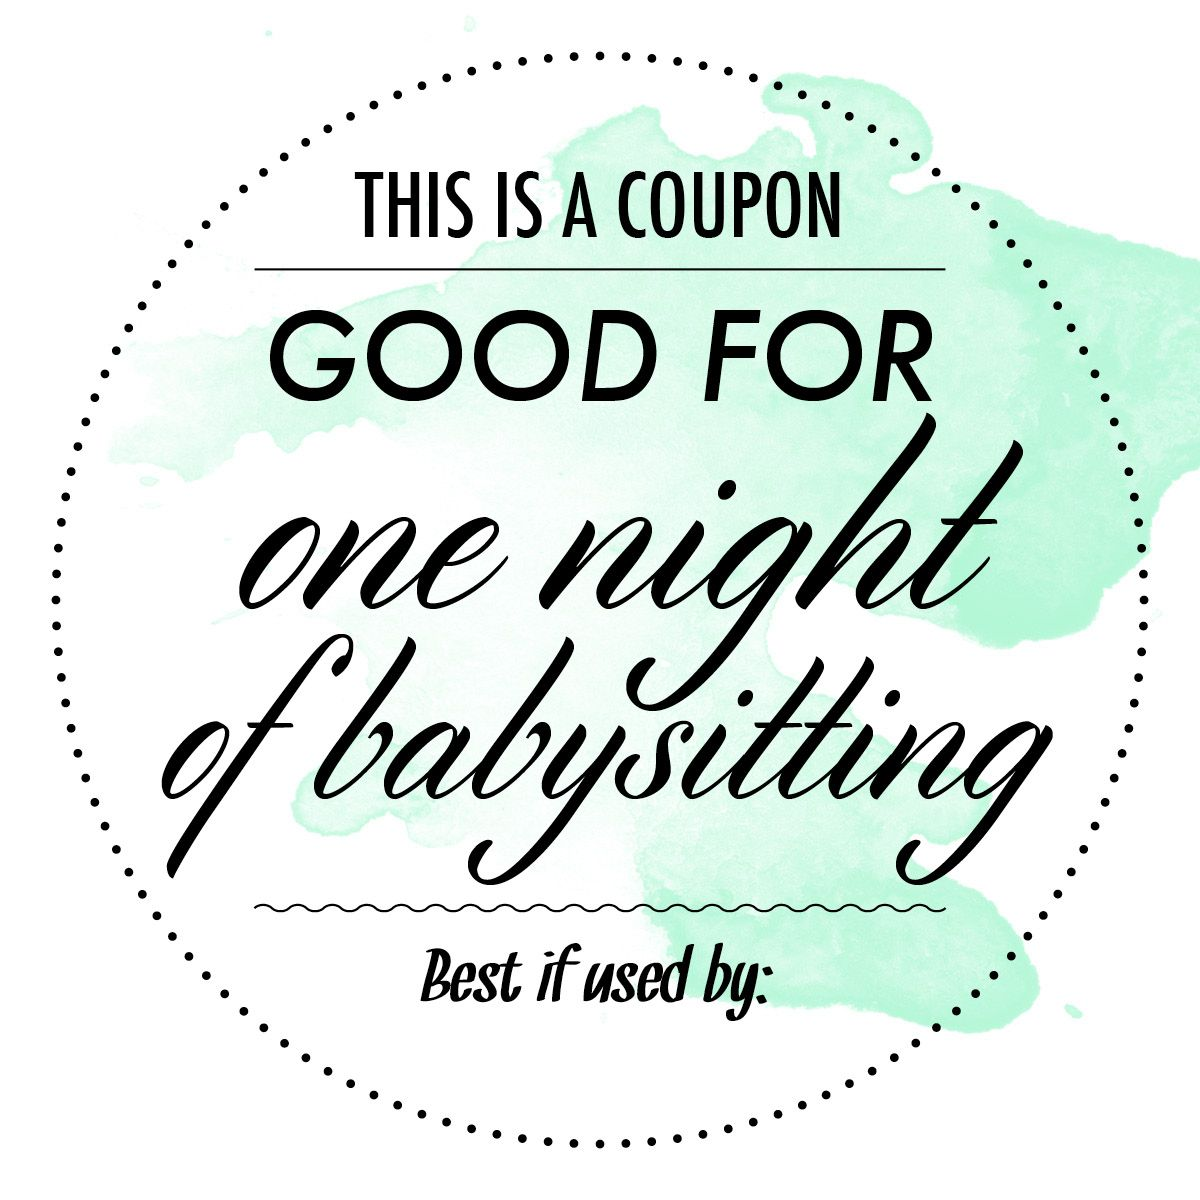 photograph relating to Babysitting Coupon Printable called Selfmade no cost babysitting coupon codes : Coupon codes ritz crackers